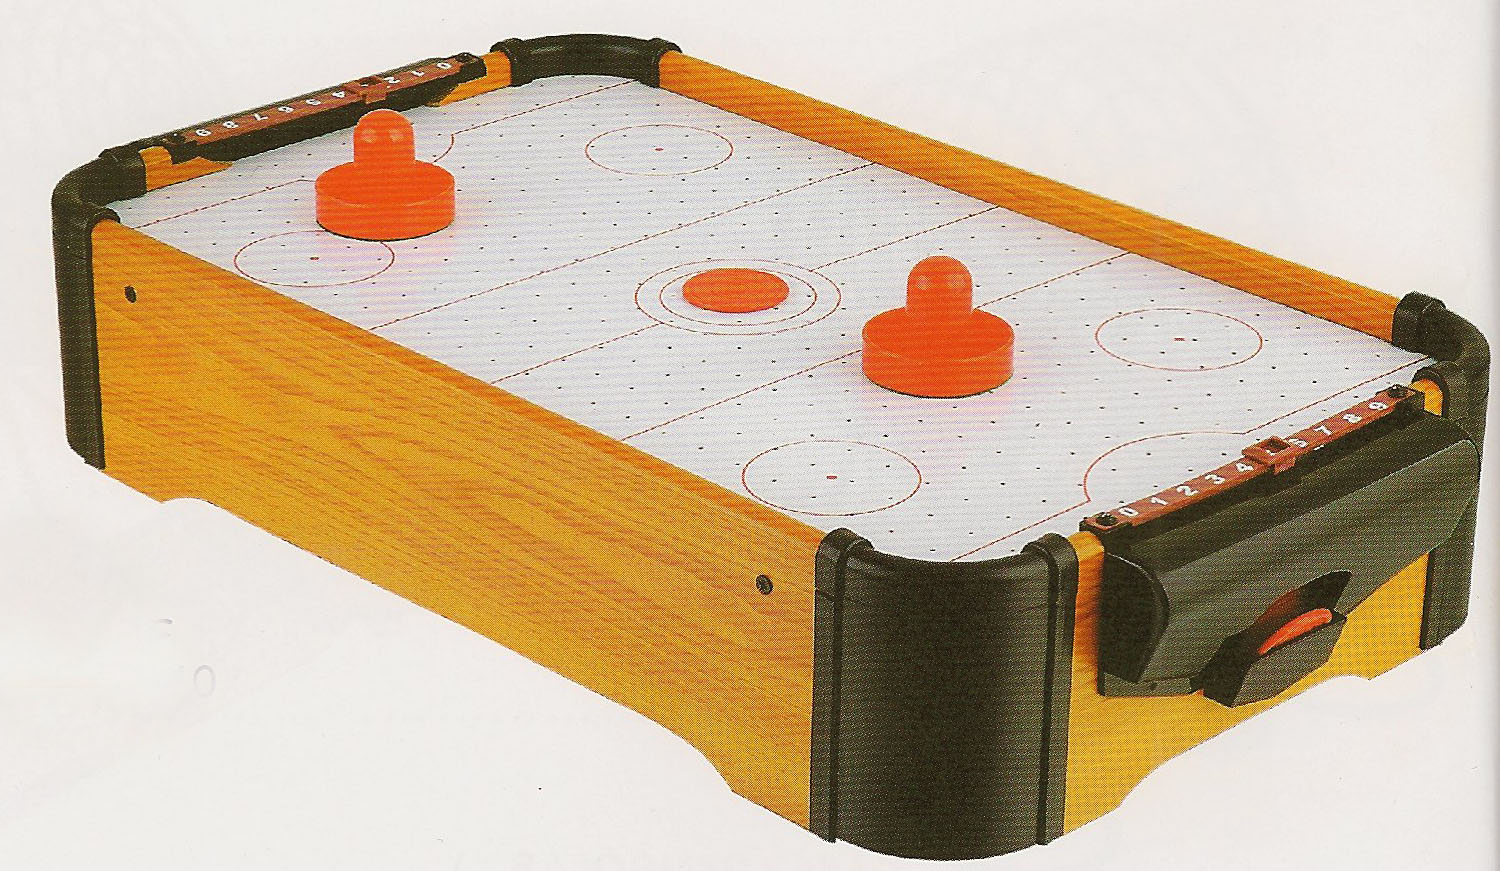 Mini Air Hockey and other Table Games - Max Promo Impact - The ODM ...